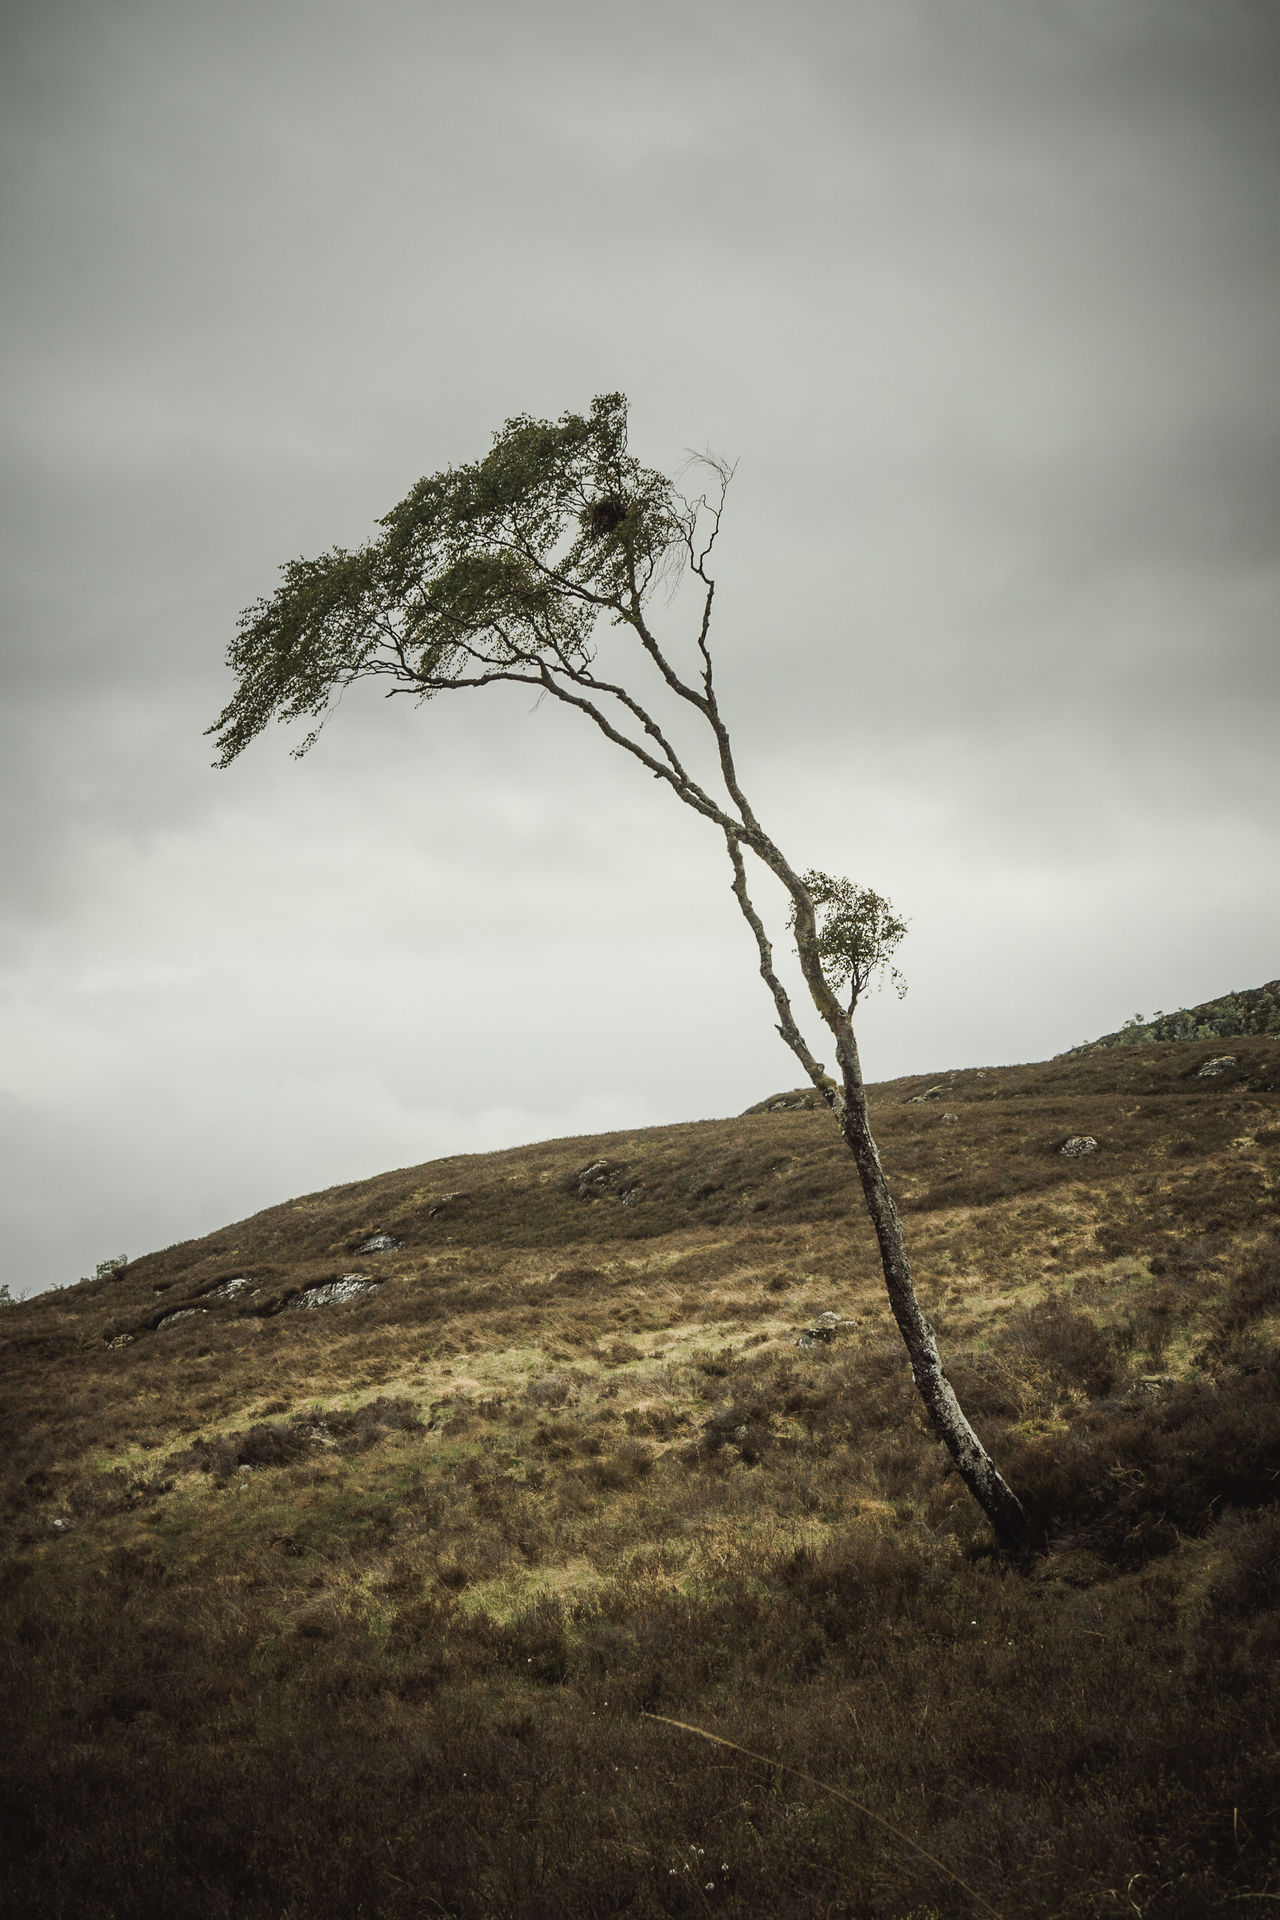 Beauty In Nature Branch Day Dead Tree Desolate Grass Highlife Landscape Landscape_Collection Lone Loneliness Mountain Nature No People Outdoors Scenics Scotland Scotland Highlands Sky The Great Outdoors - 2017 EyeEm Awards Tranquil Scene Tranquility Tree Tree Trees For Life